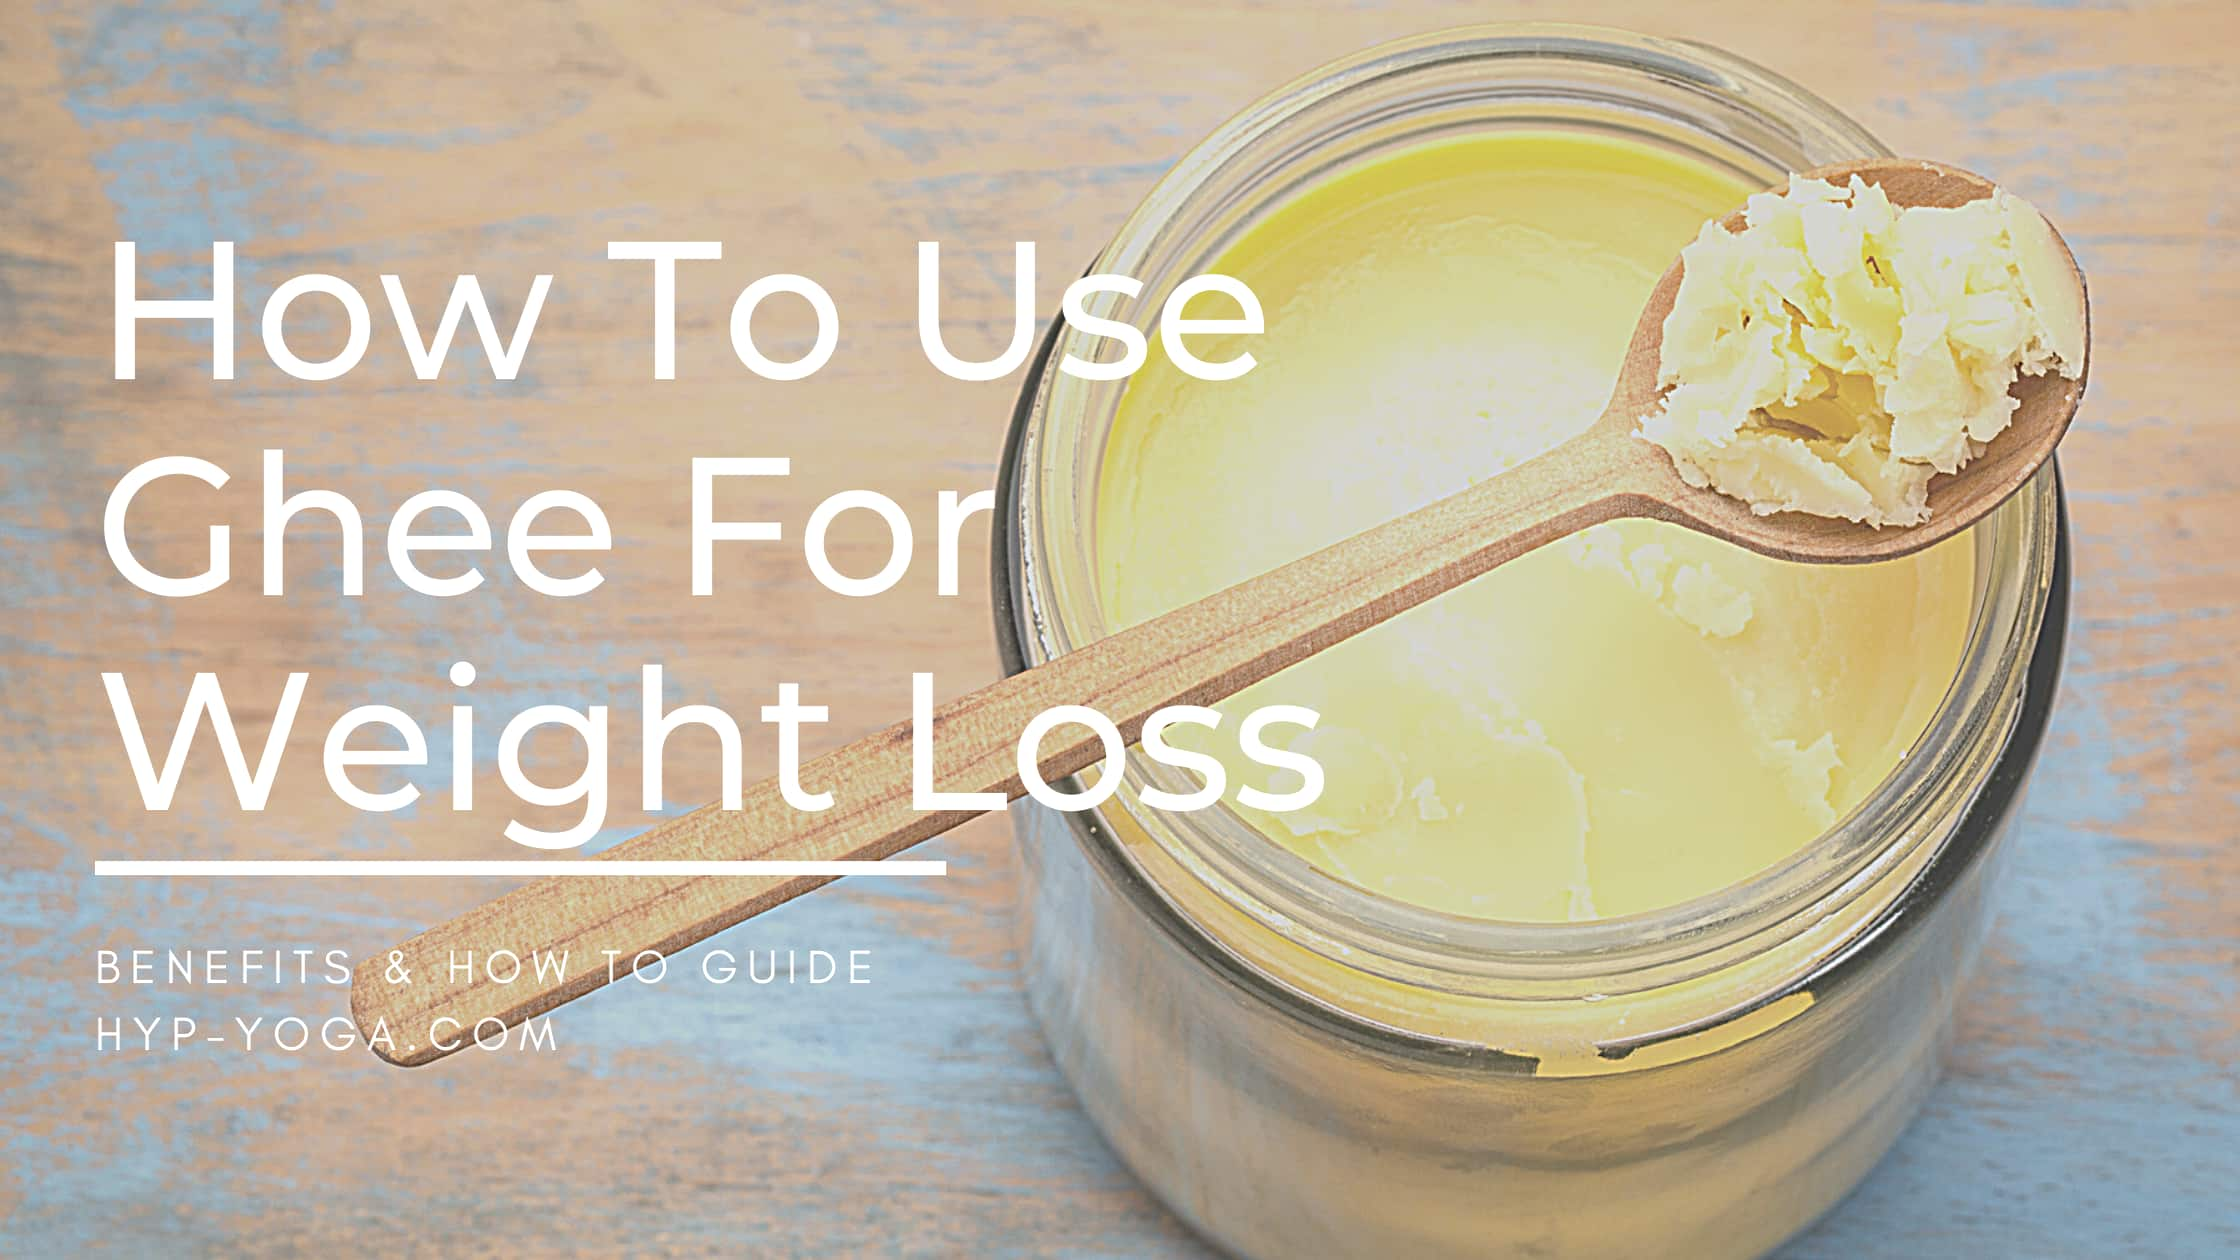 How To Use Ghee For Weight Loss - An Ayurvedic Aspect Of Clarified Butter